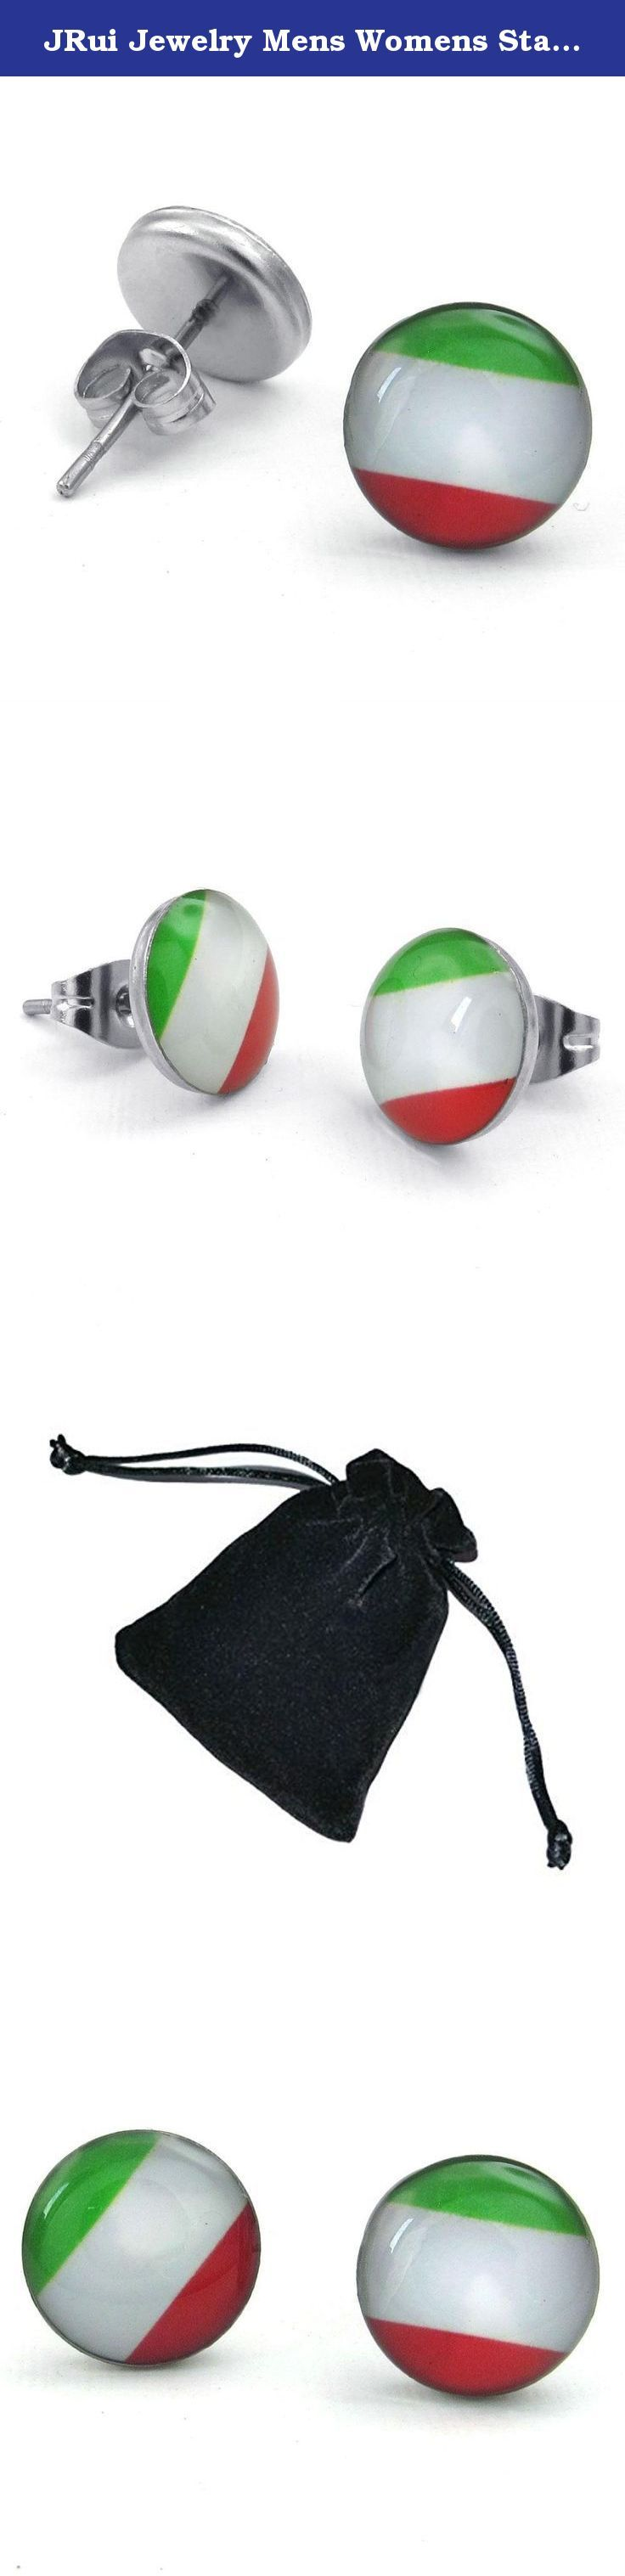 JRui Jewelry Mens Womens Stainless Steel Italy Flag Italian Banner Stud Earrings, Green White Red. Why choose Stainless Steel Jewelry? Stainless Steel jewelry does not tarnish and oxidize, which can last longer than other jewelries. It is able to endure a lot of wear and tear. And it is amazingly hypoallergenic. Such advantages make it a more popular accessory. Why need Stainless Steel Jewelry? High quality stainless steel has high resistance to rust, corrosion and tarnishing, which…